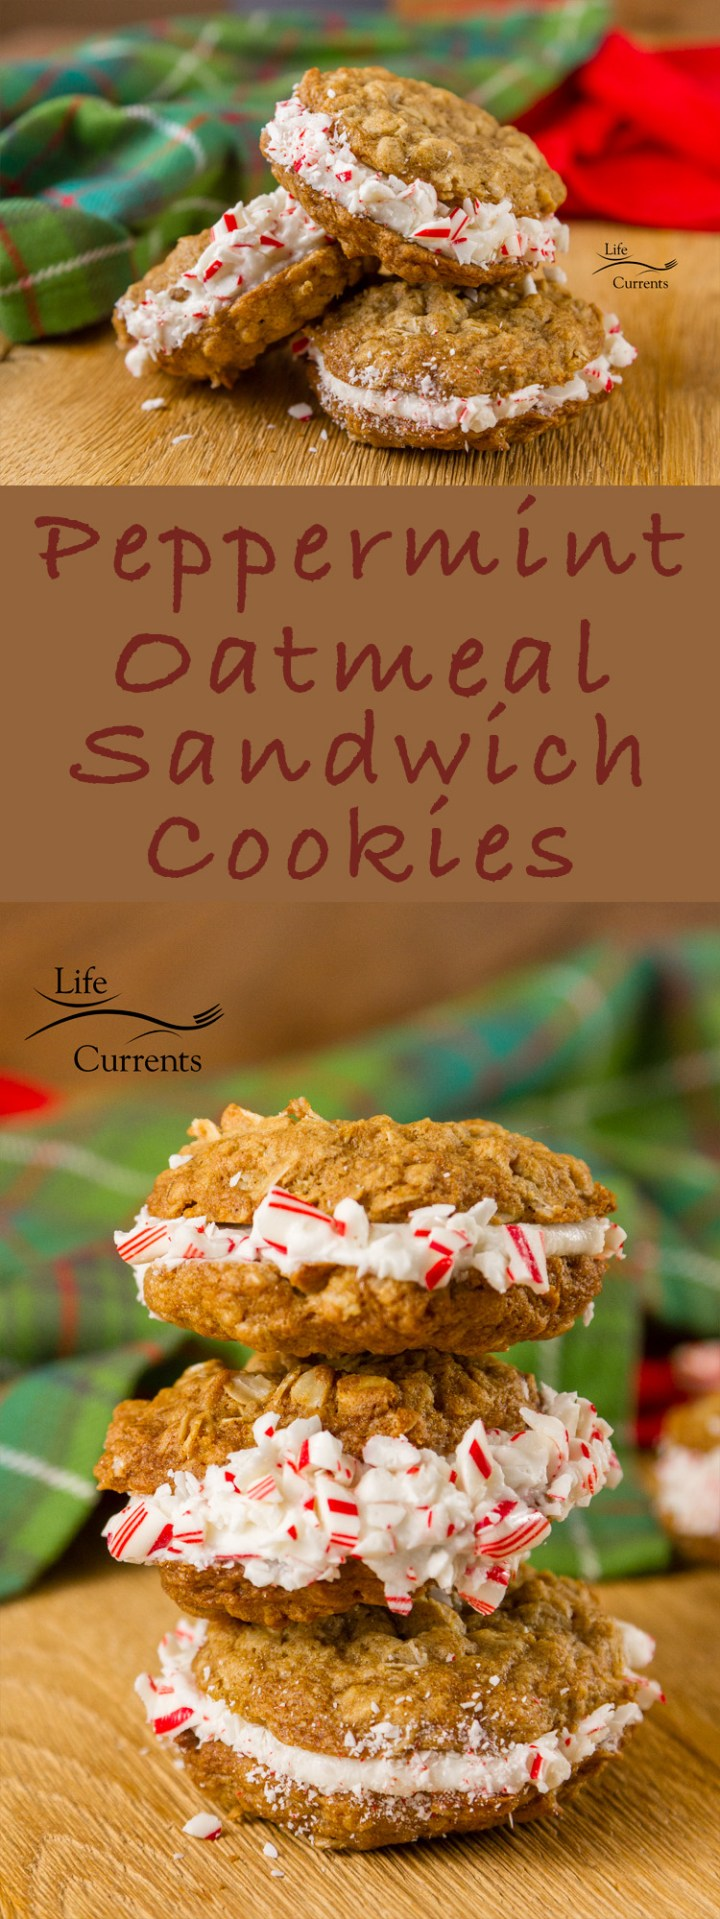 Peppermint Oatmeal Sandwich Cookies Recipe - a childhood classic, all dressed up for the holidays #peppermint #holidays #cookie #holidaycookie